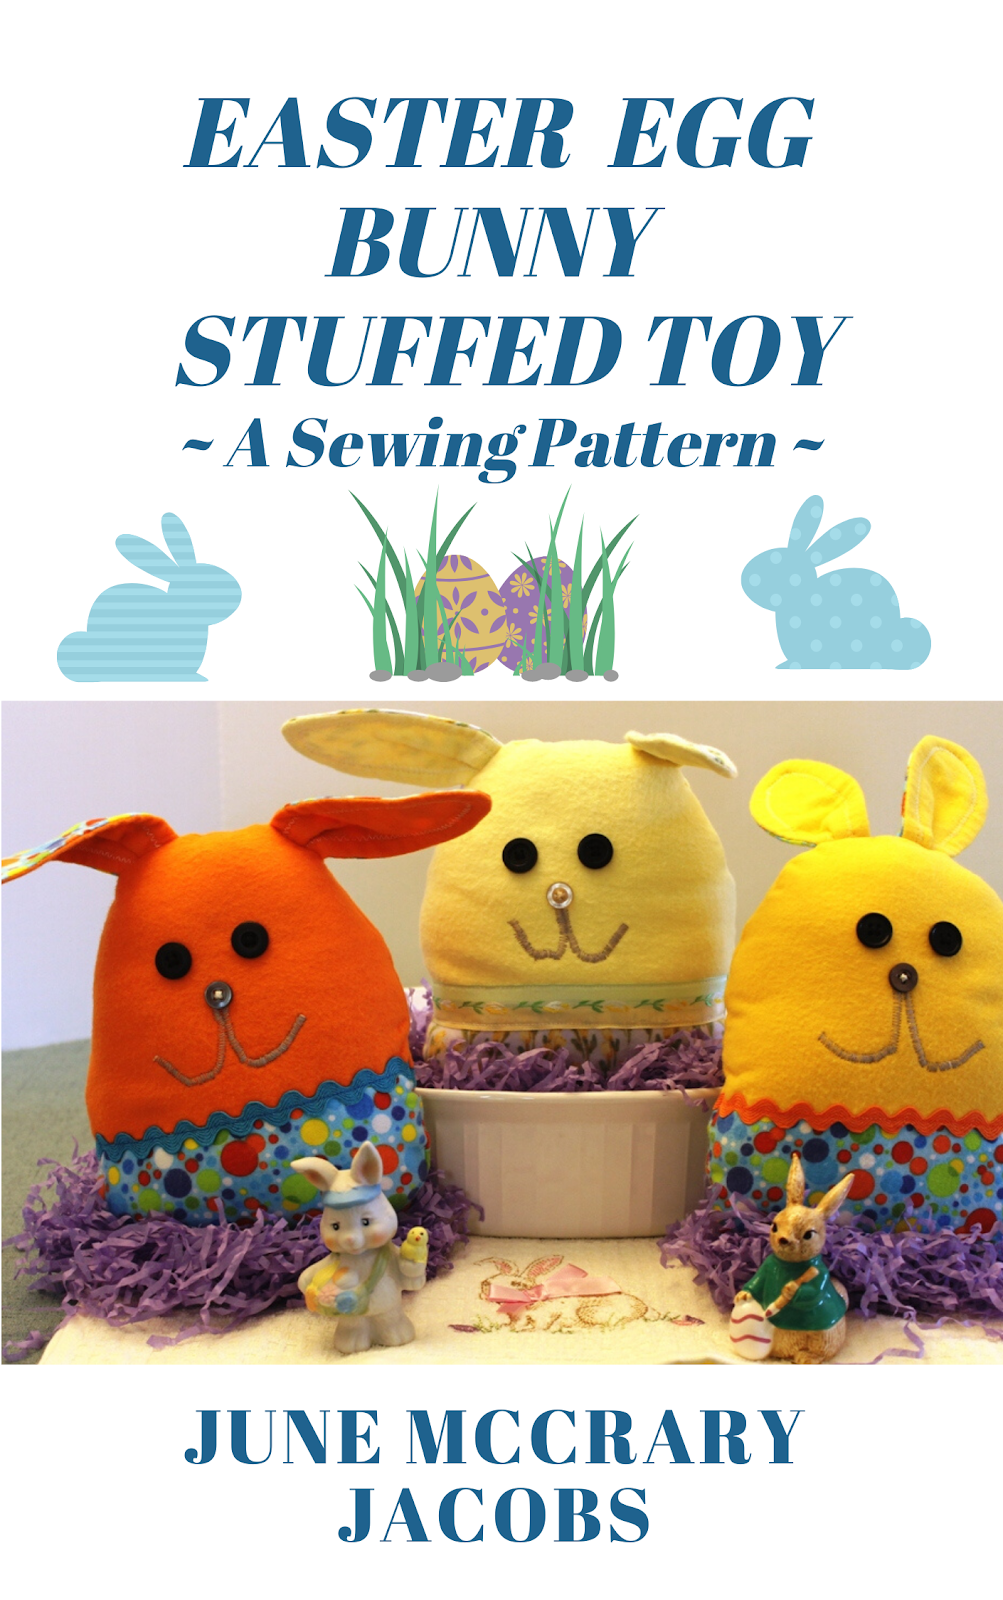 FIND 'EASTER EGG BUNNY STUFFED TOY:  A SEWING PATTERN' ON AMAZON.